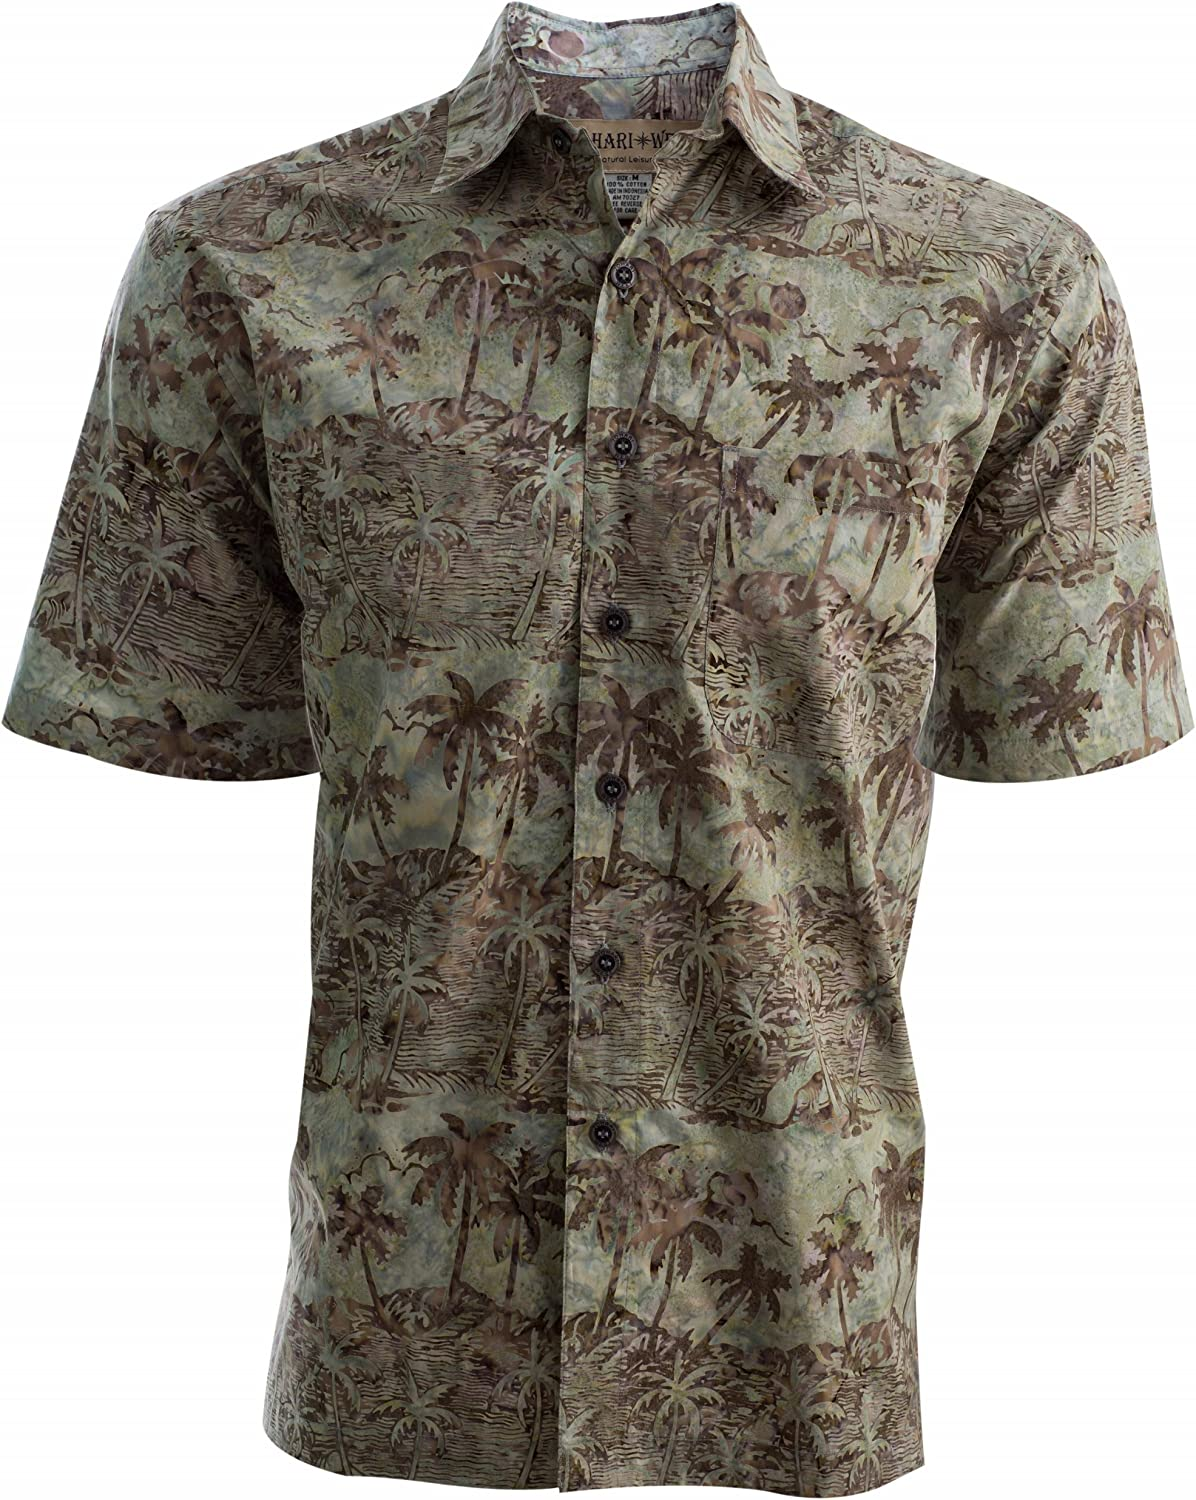 Johari West Coastal Dusk Mens Cotton Batik Shirt